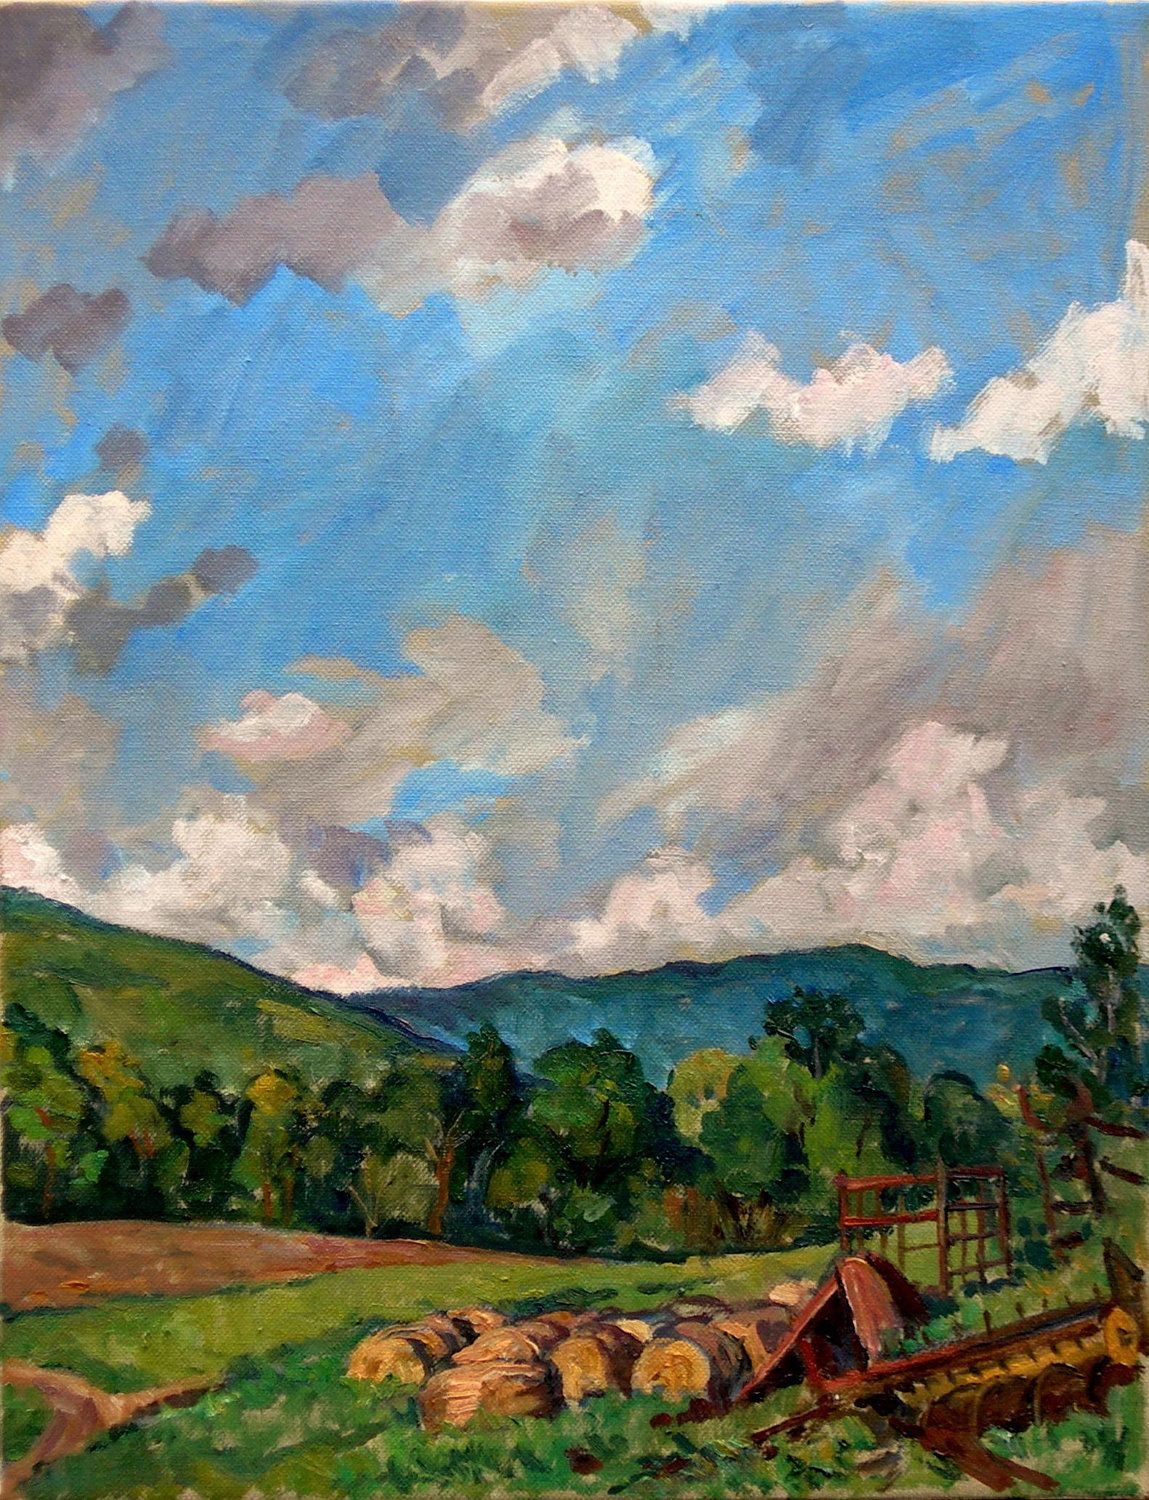 Berkshires Landscape Painting Summer Sky 14x18 Oil On Etsy Landscape Paintings Oil Painting Landscape Painting